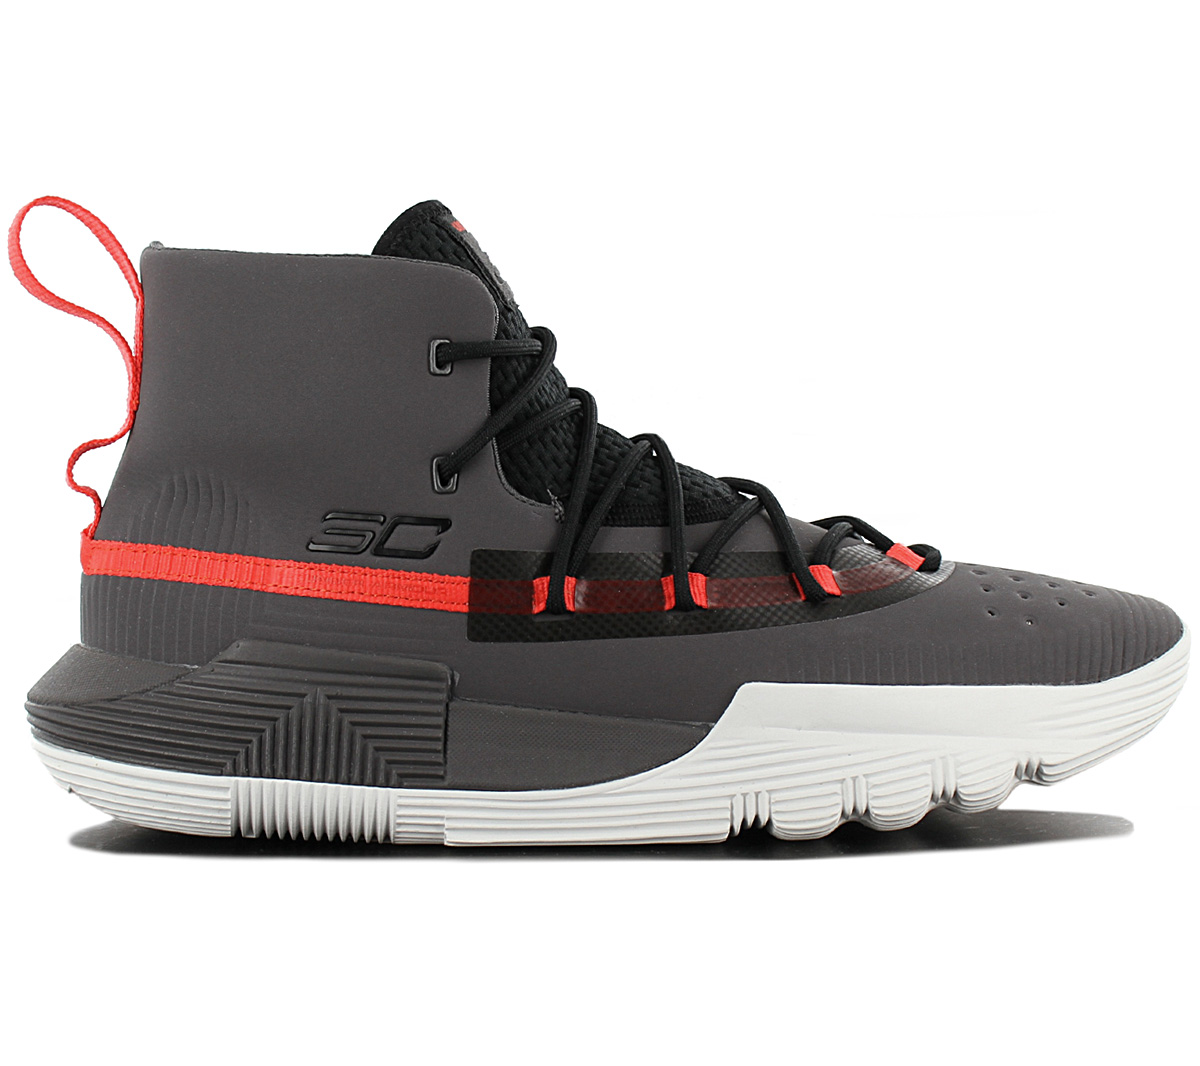 brand new abed9 efa42 Details about Ua under armour Stephen Curry Sc 3Zero II 2 Men's Basketball  Shoes 3020613-101